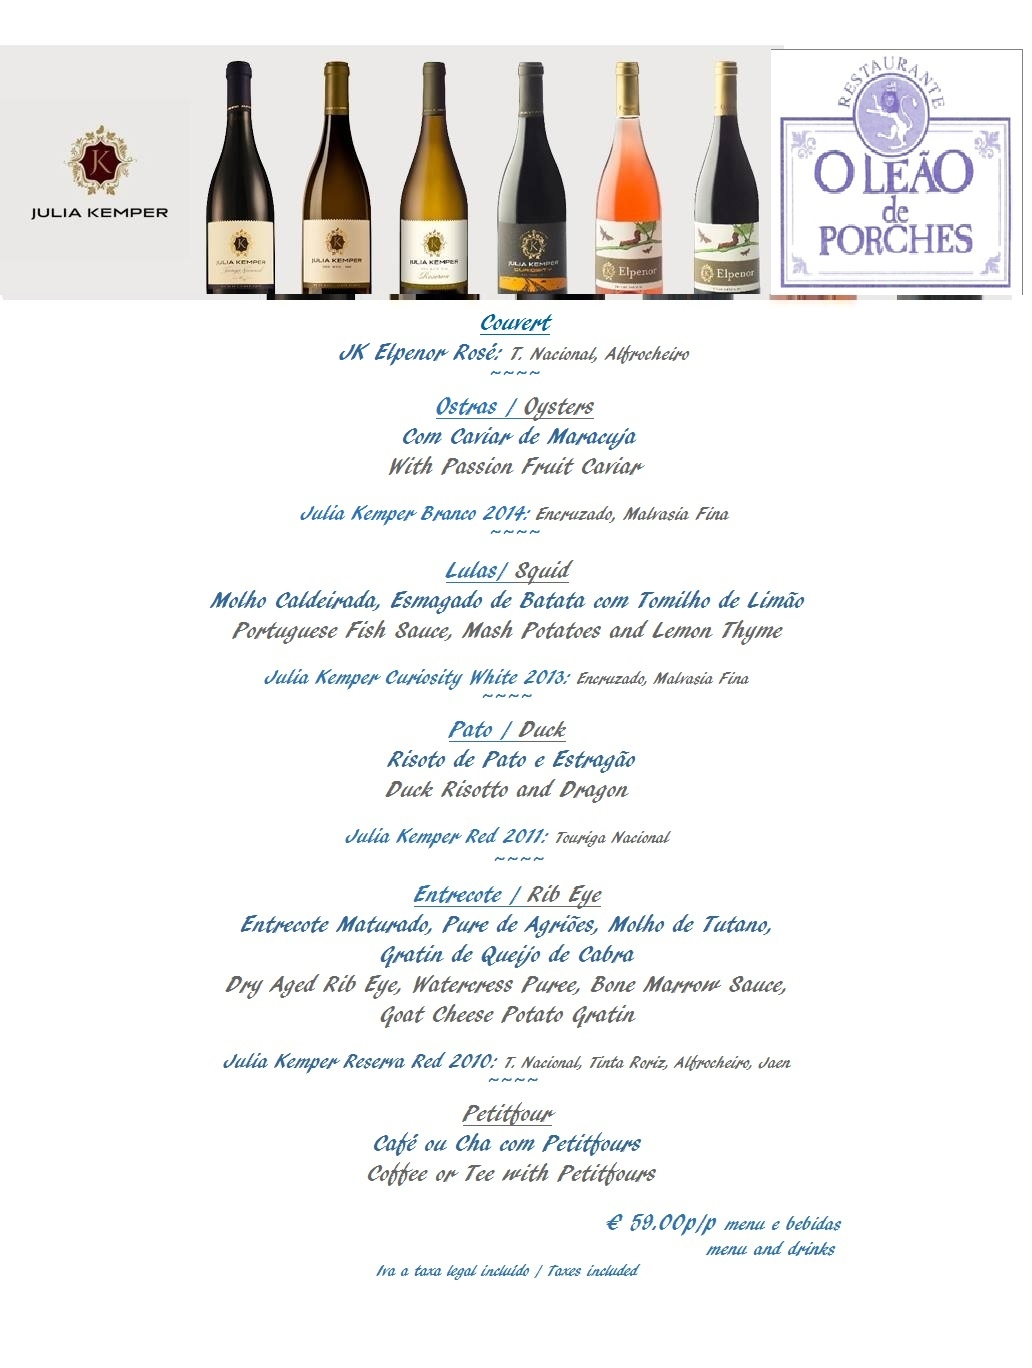 Wine Event at O Leão de Porches